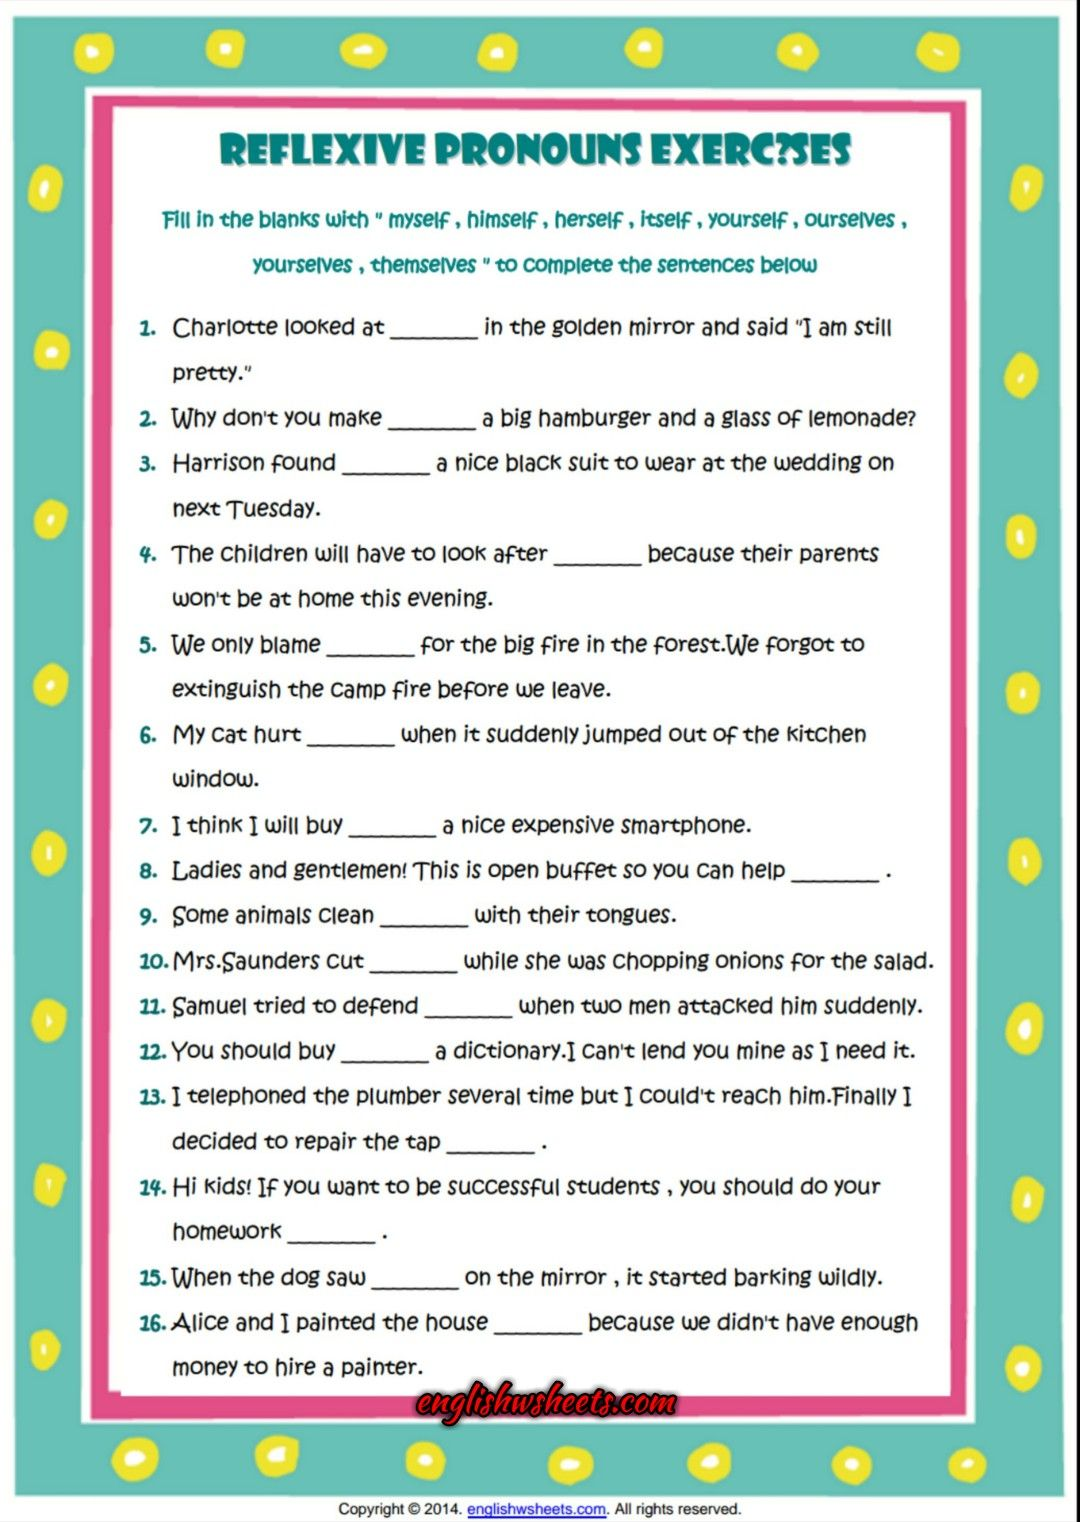 hight resolution of Reflexive Pronouns ESL Grammar Exercise Worksheet   Reflexive pronoun